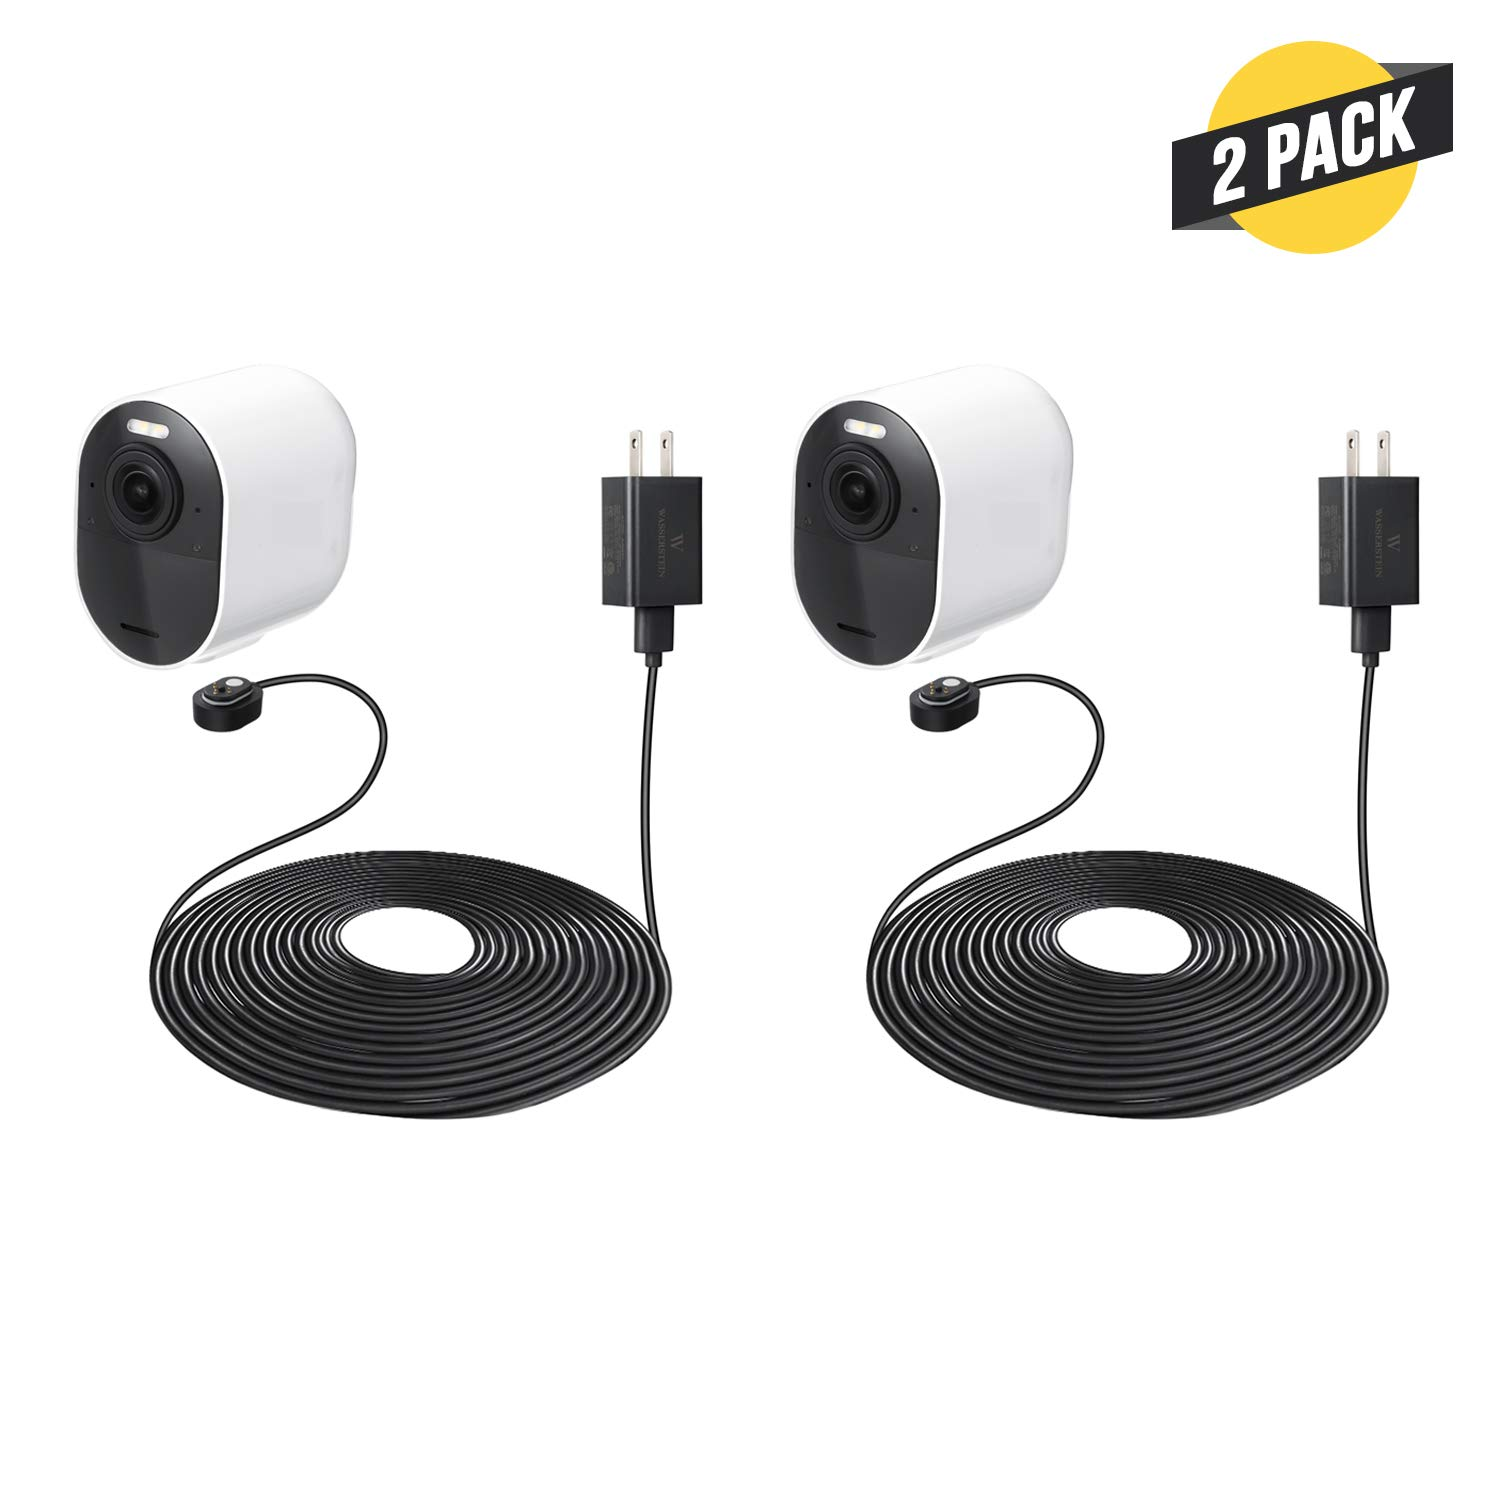 25ft/7.6m Weatherproof Outdoor Magnetic Charging Cable with Quick Charge Power Adapter Compatible with Arlo Ultra & Arlo Pro 3 - Charging Convenience for Your Arlo Camera (2- Pack, Black)